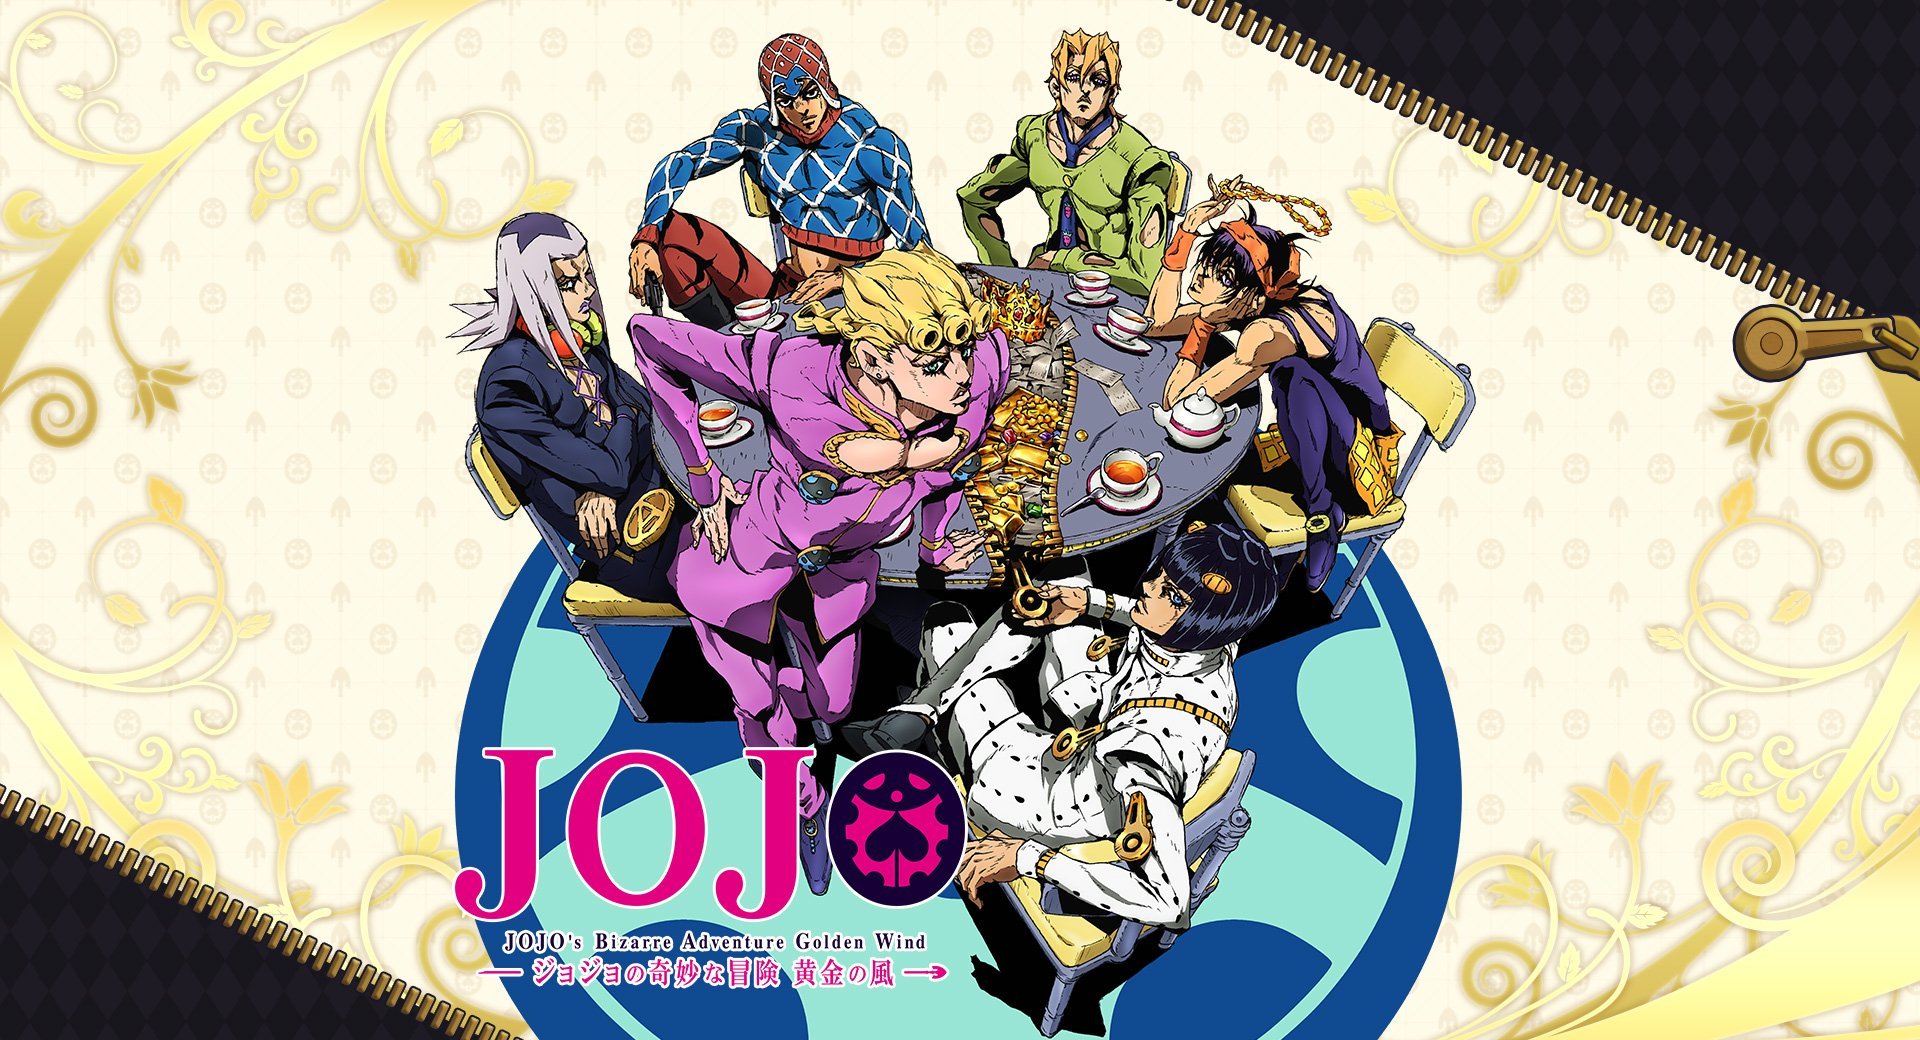 Key art for JoJo's Bizarre Adventure: Golden Wind. The full cast sits around a table, glaring at the camera.